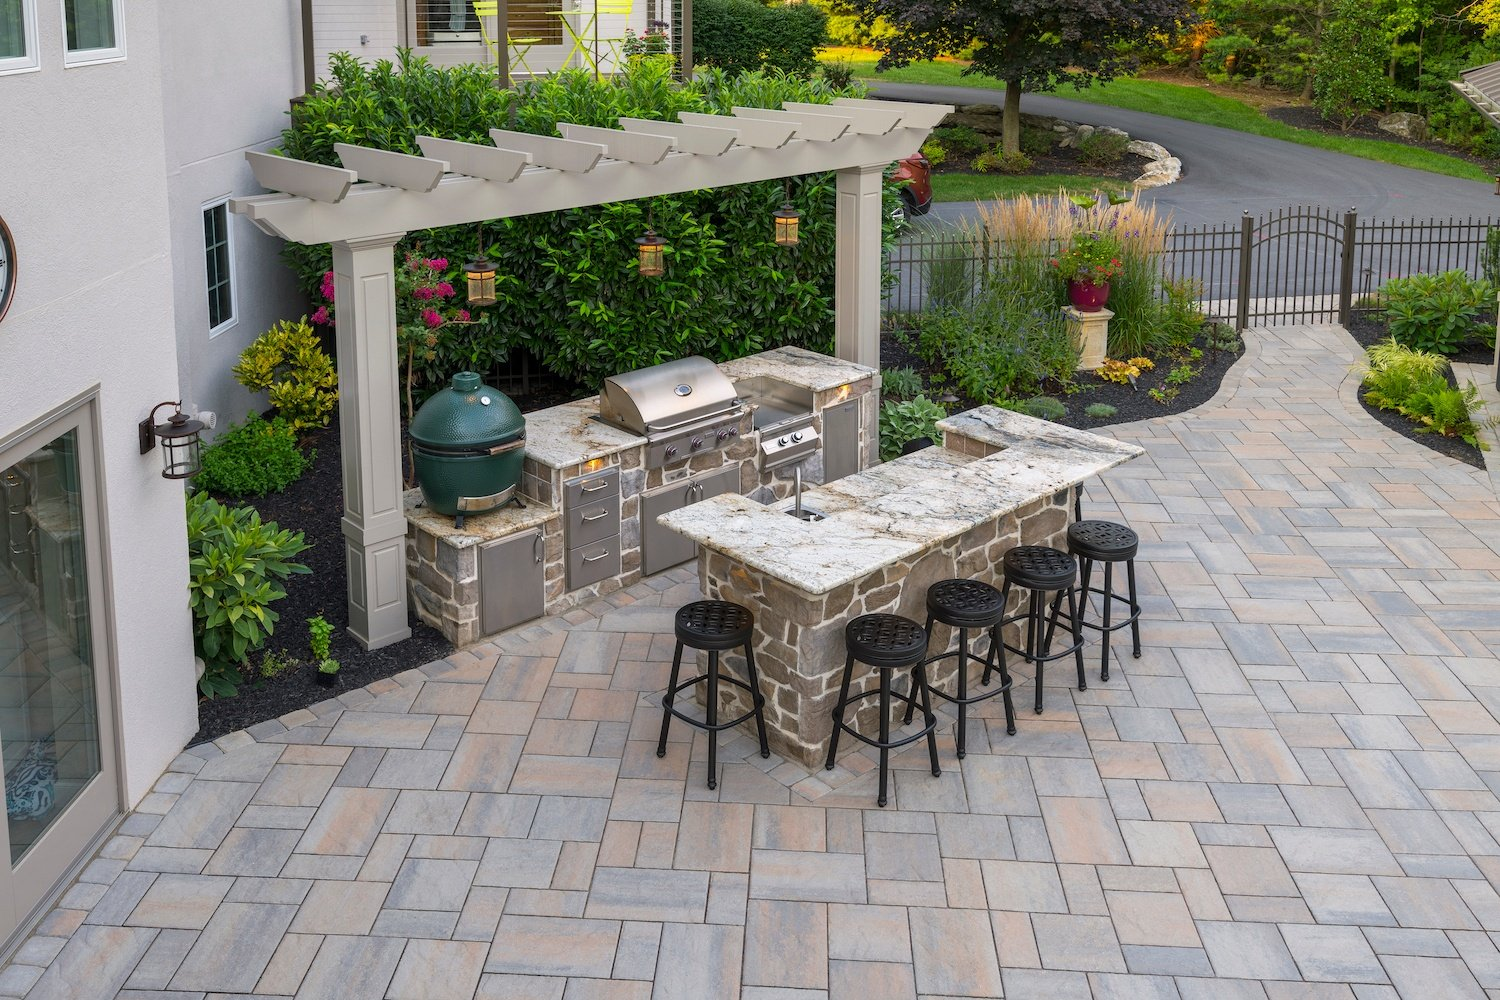 patio-planting-outdoor-kitchen-1